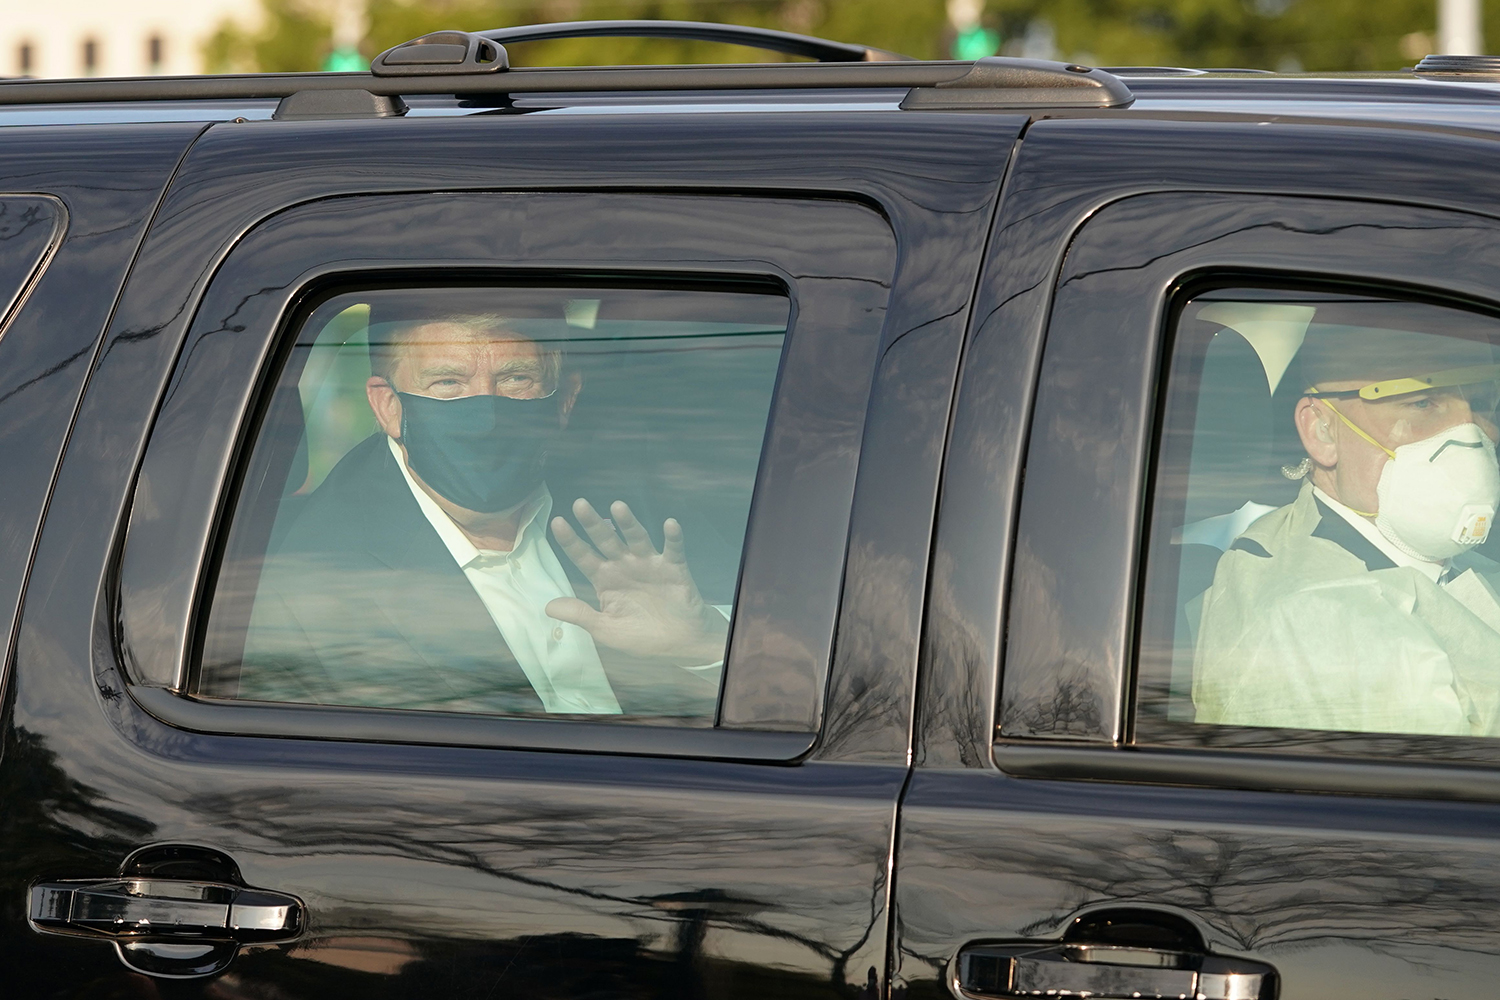 U.S. President Donald Trump waves from the back of a car outside Walter Reed National Military Medical Center in Bethesda, Maryland, on Oct. 4. Though hospitalized with COVID-19, the president said he wanted to thank supporters in a drive-by visit. ALEX EDELMAN/AFP via Getty Images